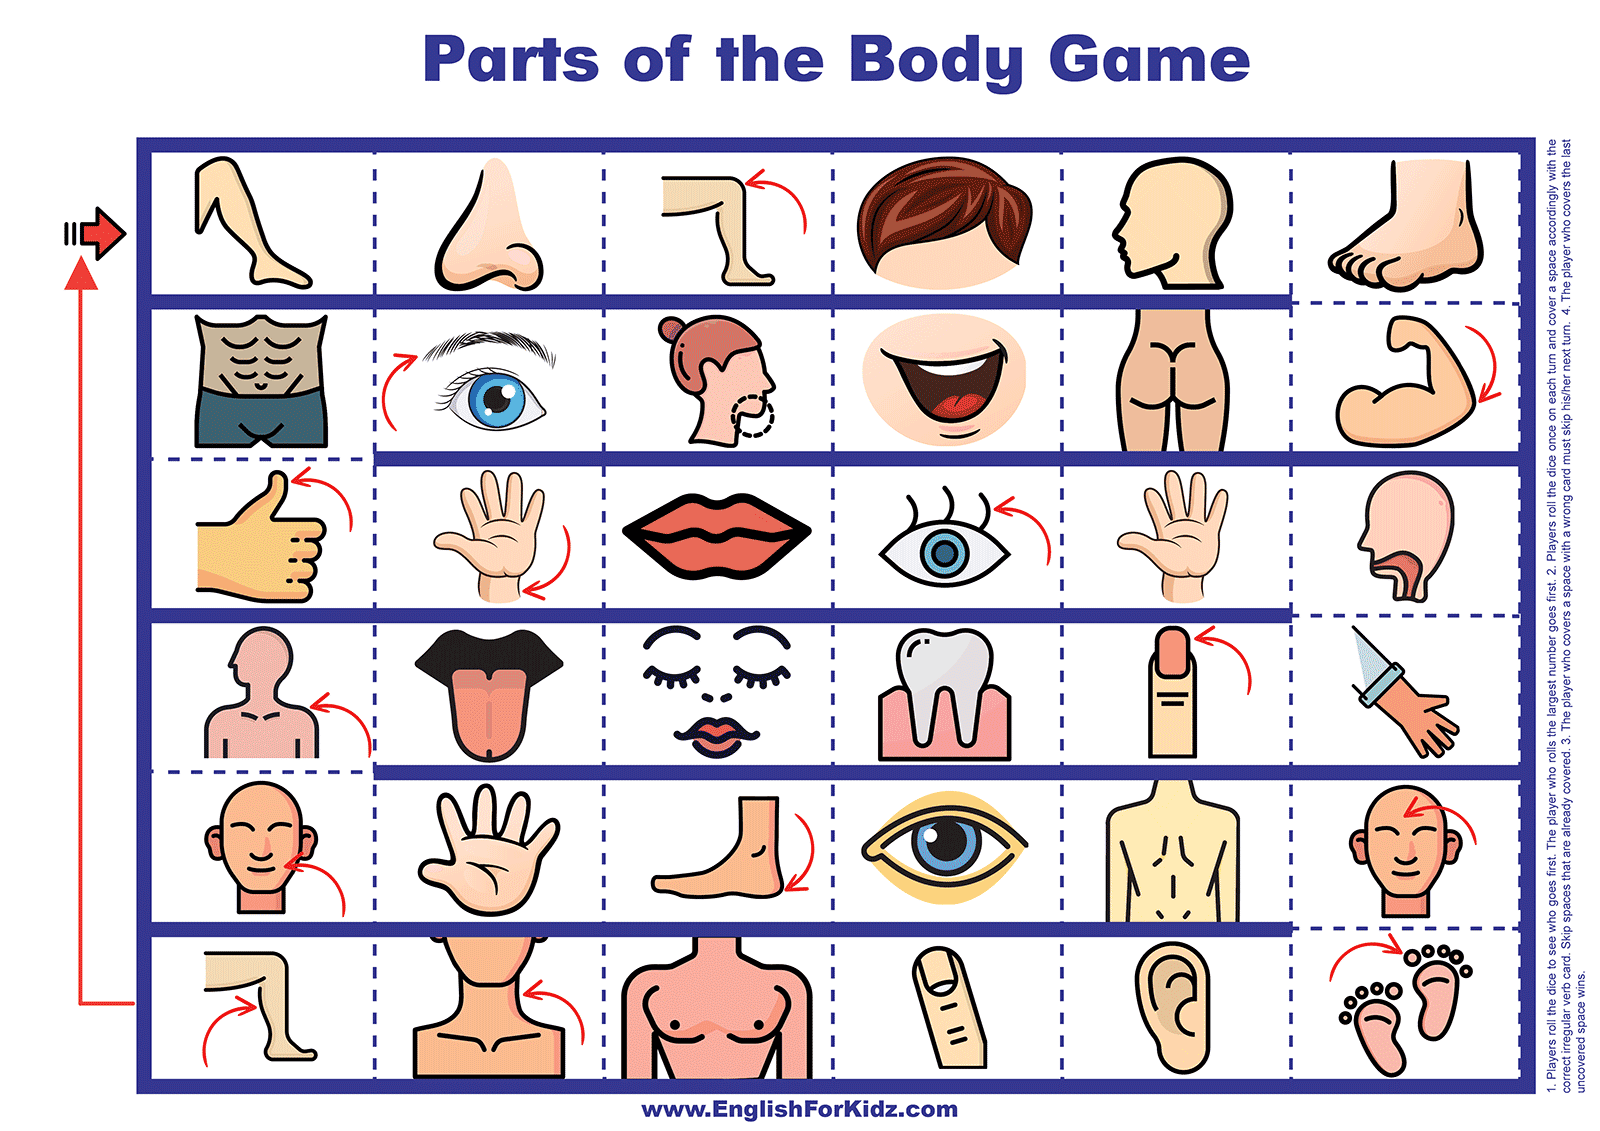 Parts of the Body - Printable Board Game